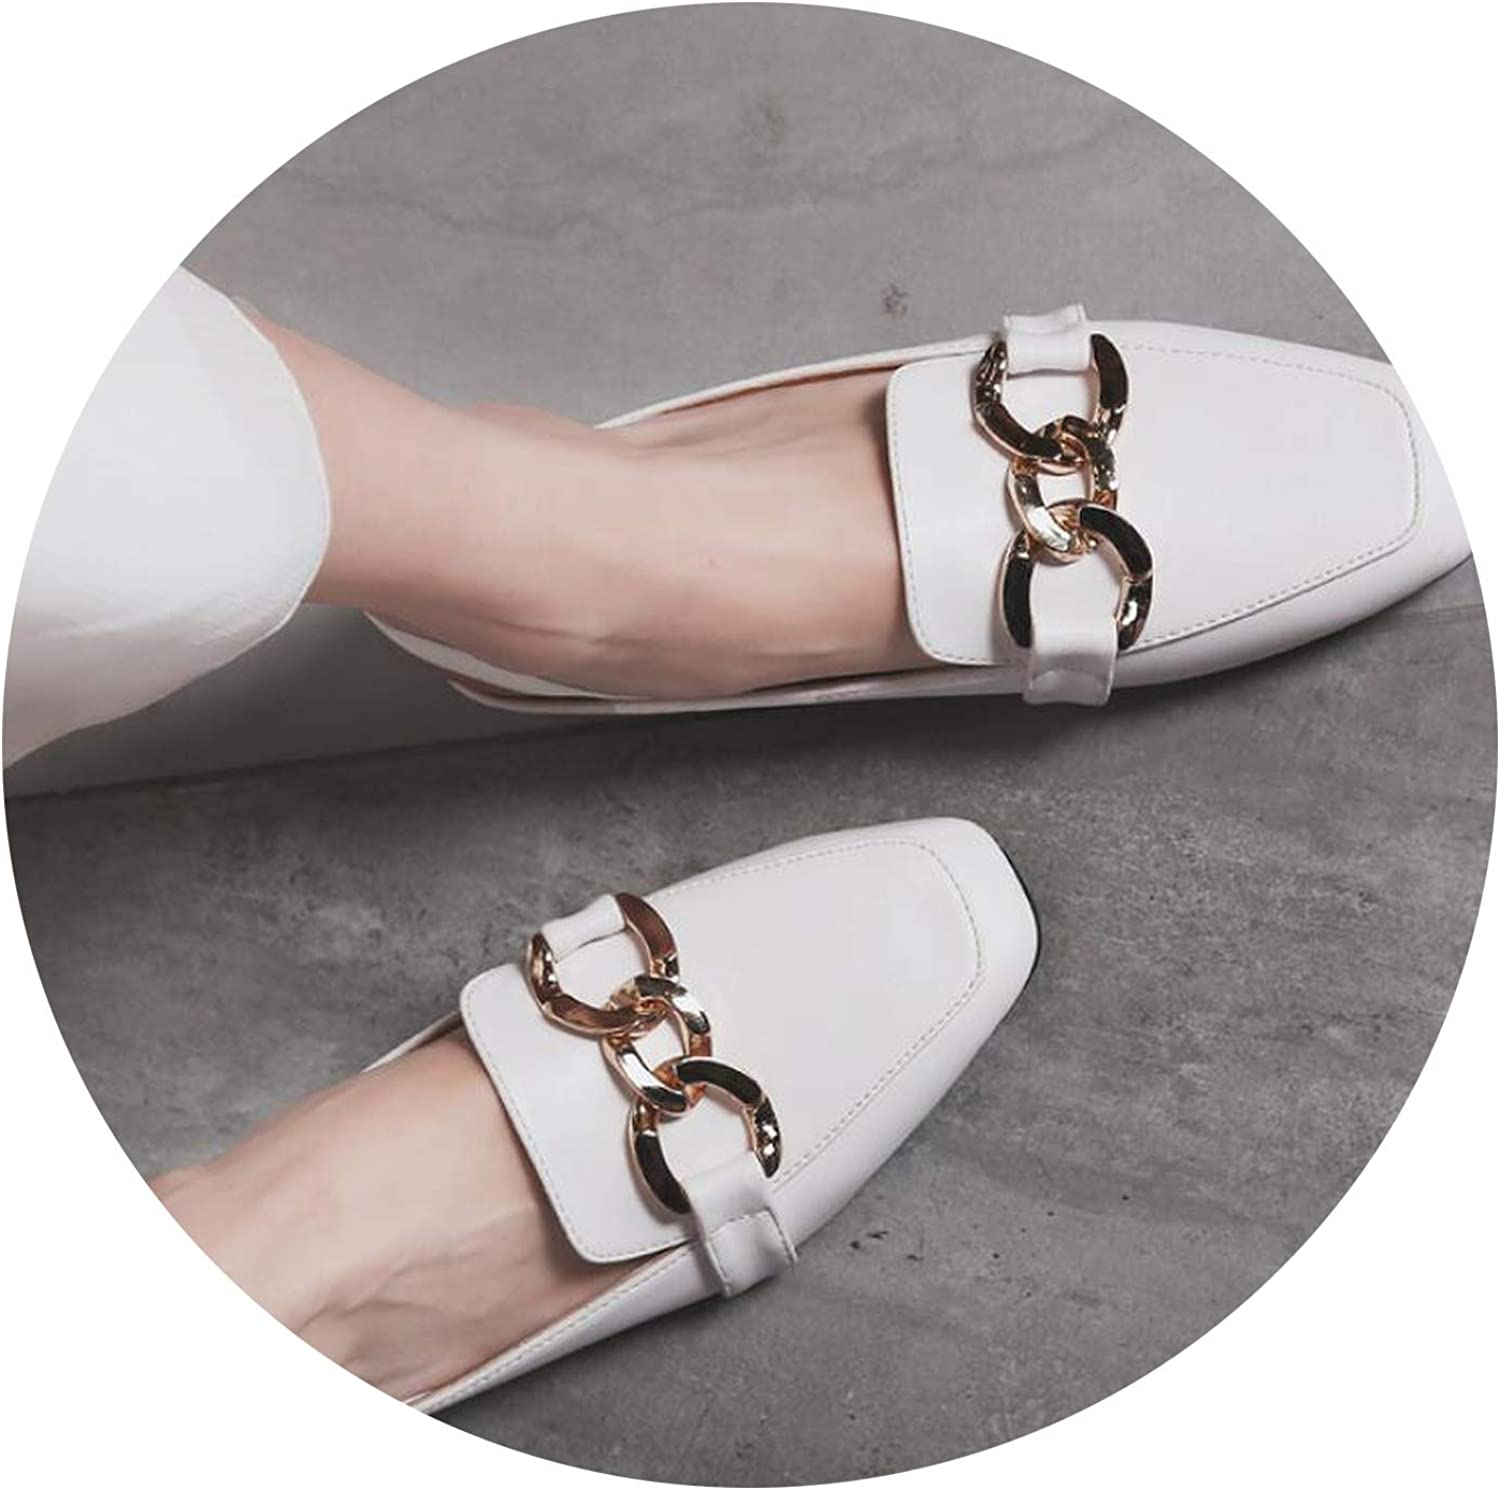 Heat-Tracing Woman Mules shoes 40 41 42 Big Size Sandals Tassel Chains Metal Buckle Design Slippers Square Toe Back Strap Mules